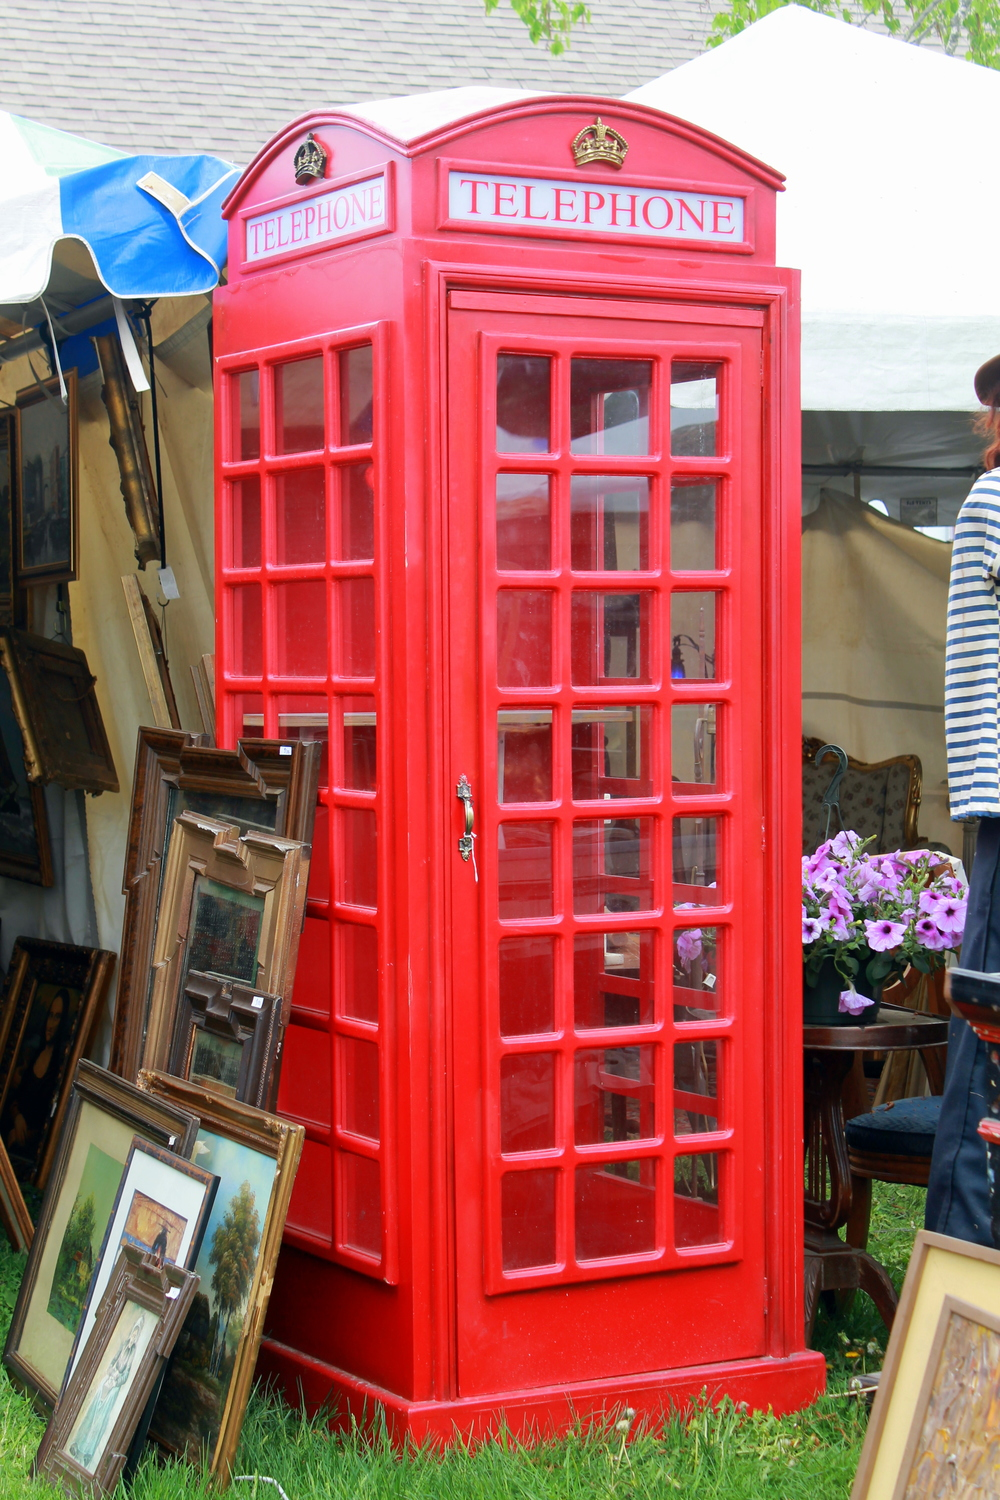 These old British phone booths are becoming obsolete. Would make for a fun phone charging station in a home that could accommodate this!